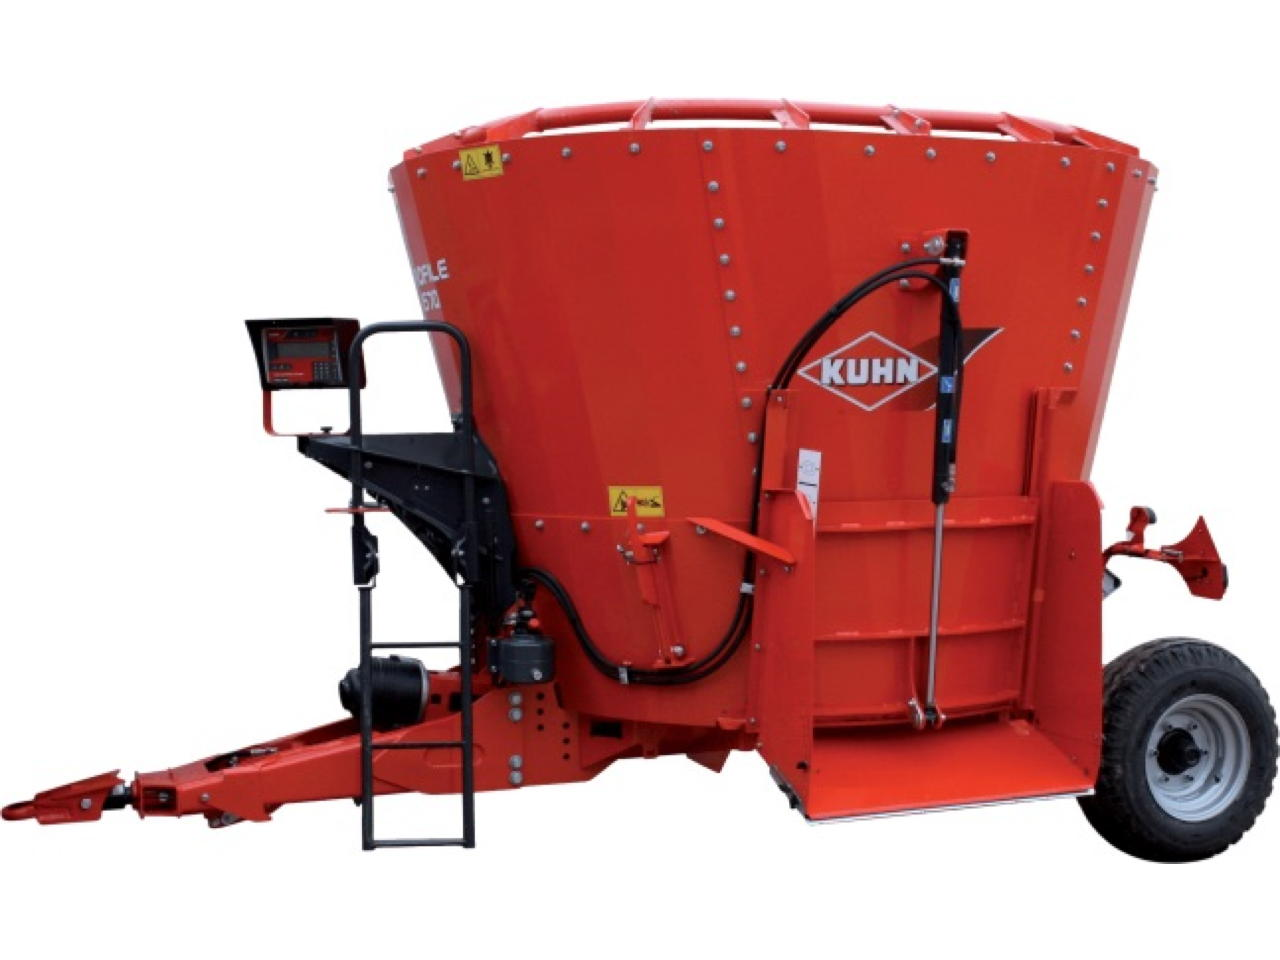 Kuhn Profile 1 DS Profile 4.1 DS